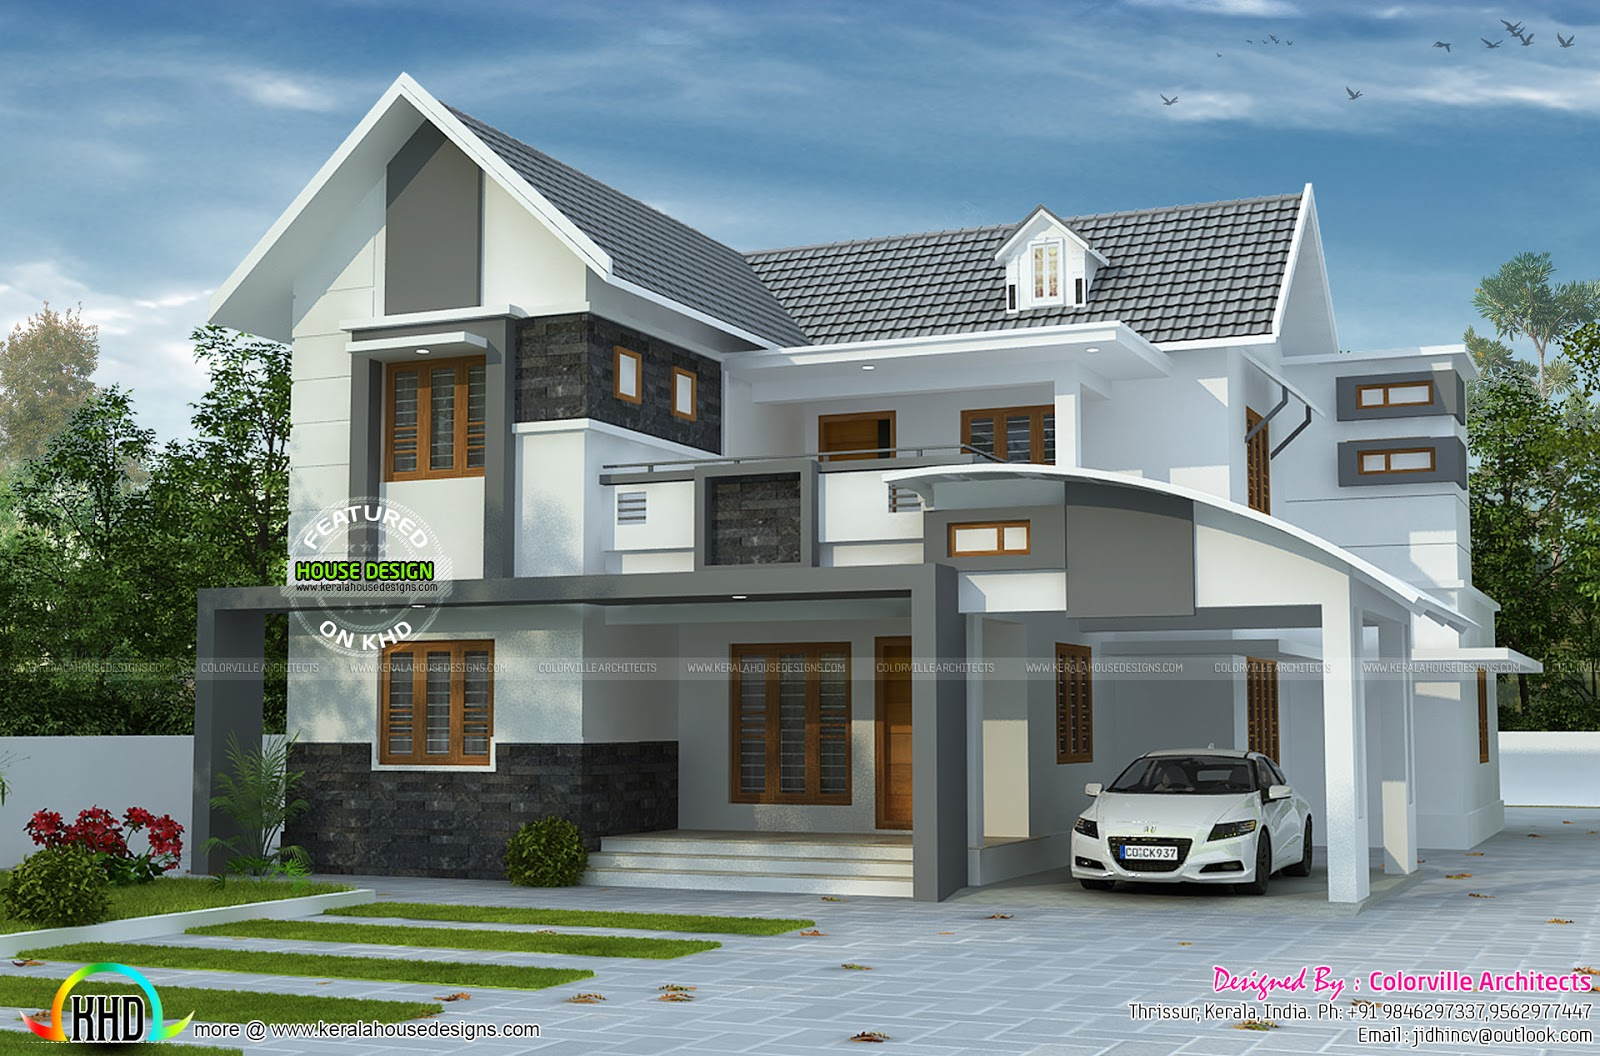 House plan by colorville architects kerala home design for House plans and designs